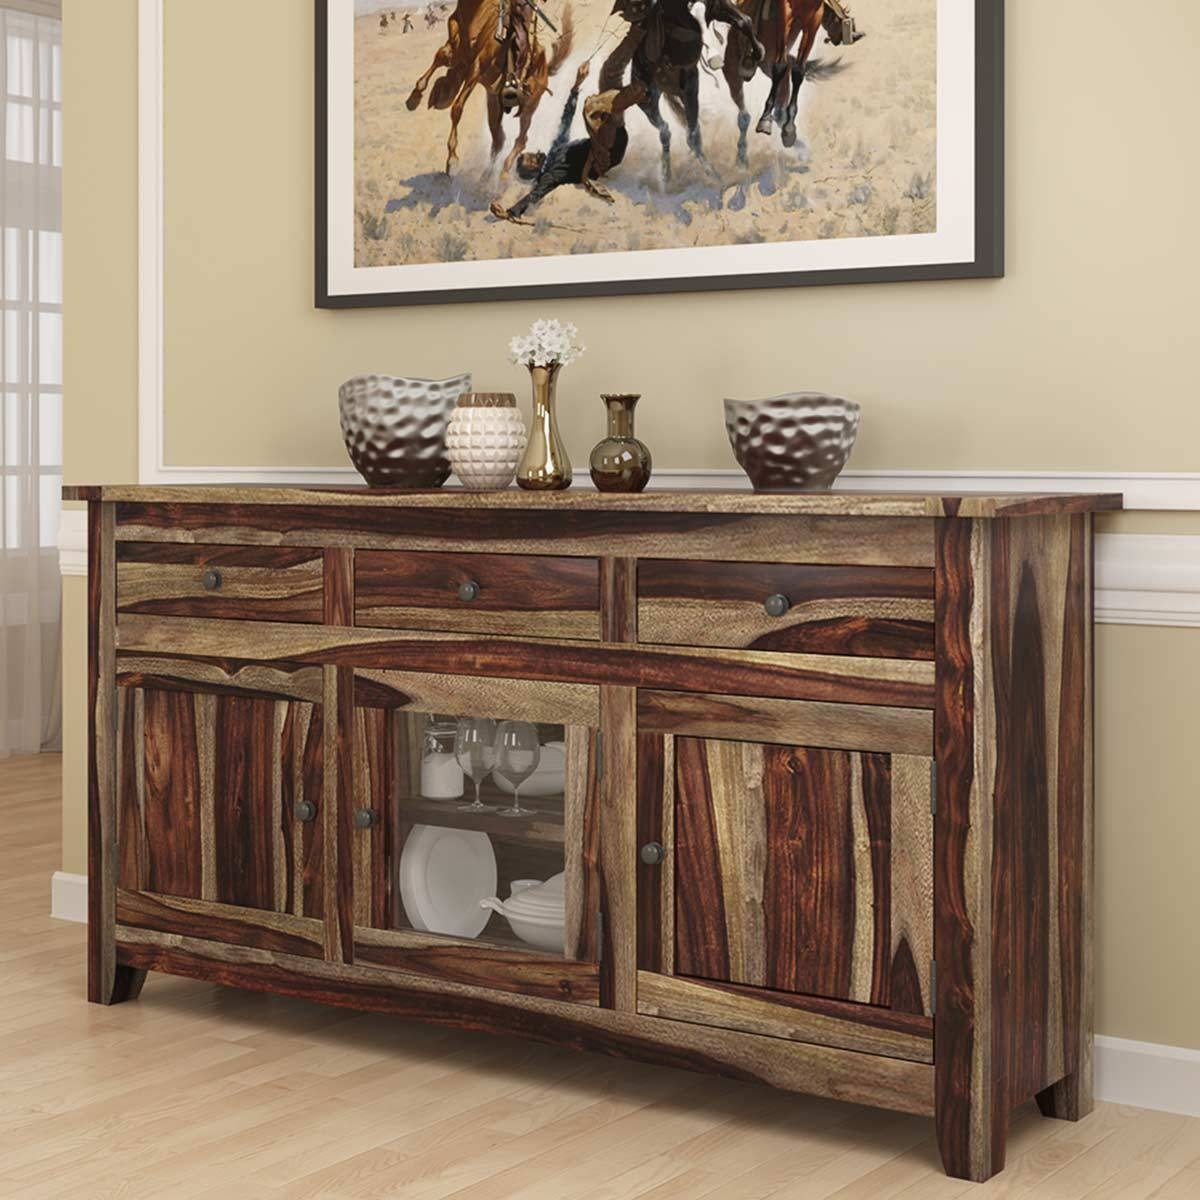 Modern Rustic Solid Wood Glass Door 3 Drawer Sideboard Cabinet Pertaining To Sideboards With Glass Doors And Drawers (View 9 of 15)